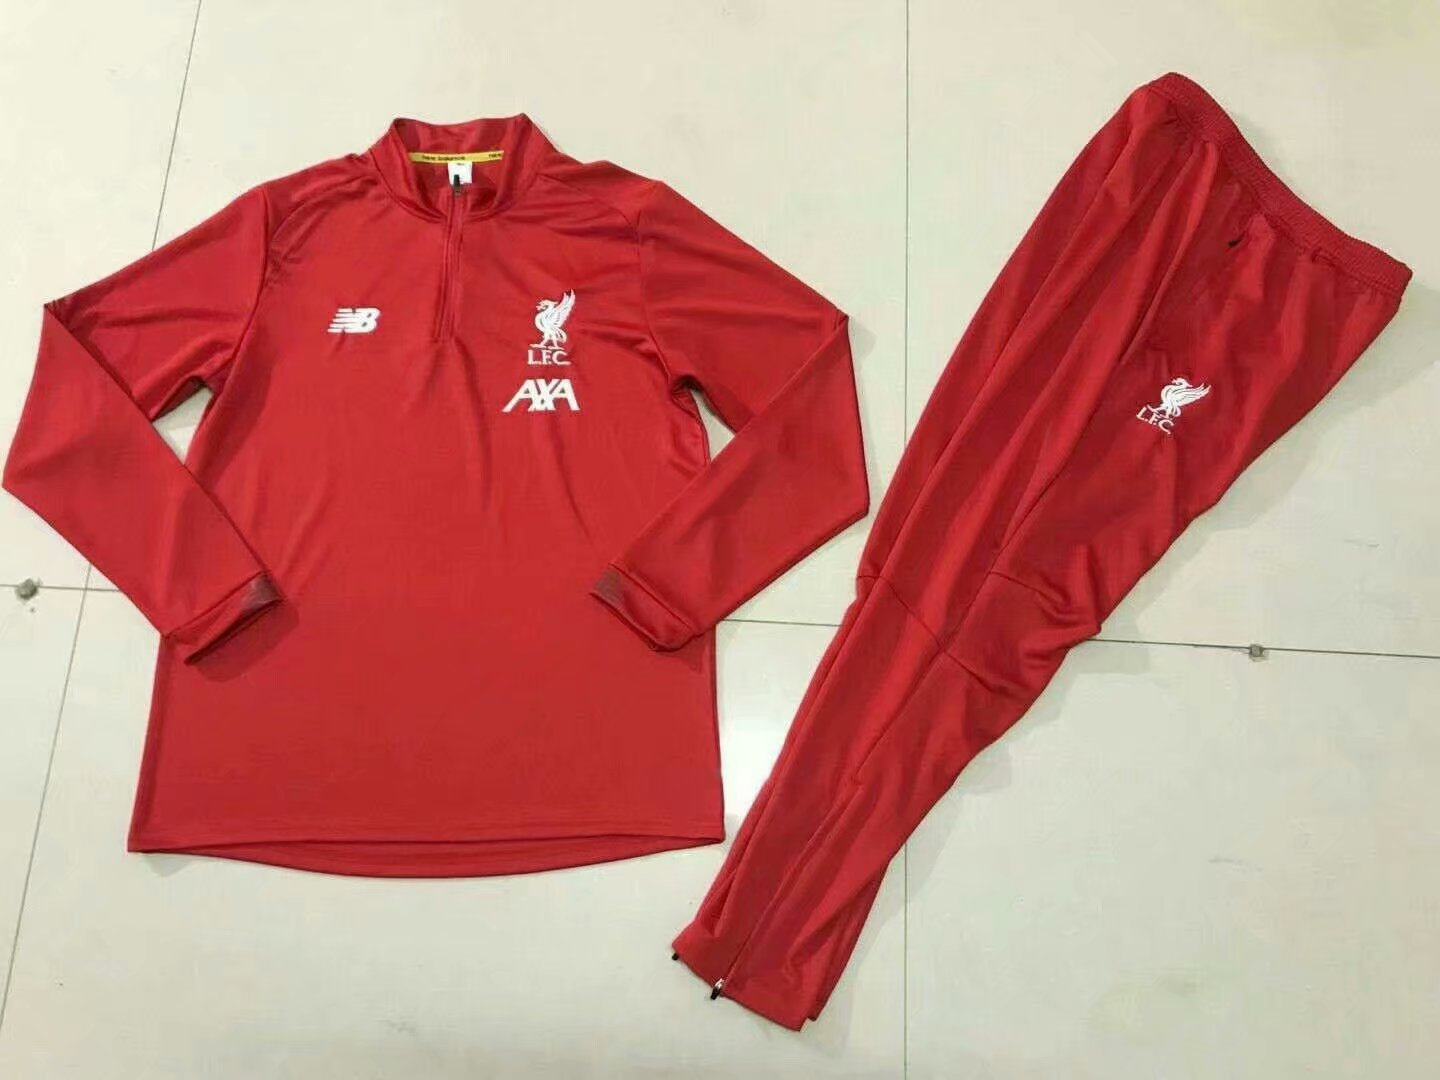 Liverpool 2019/20 Sweatshirt Sets